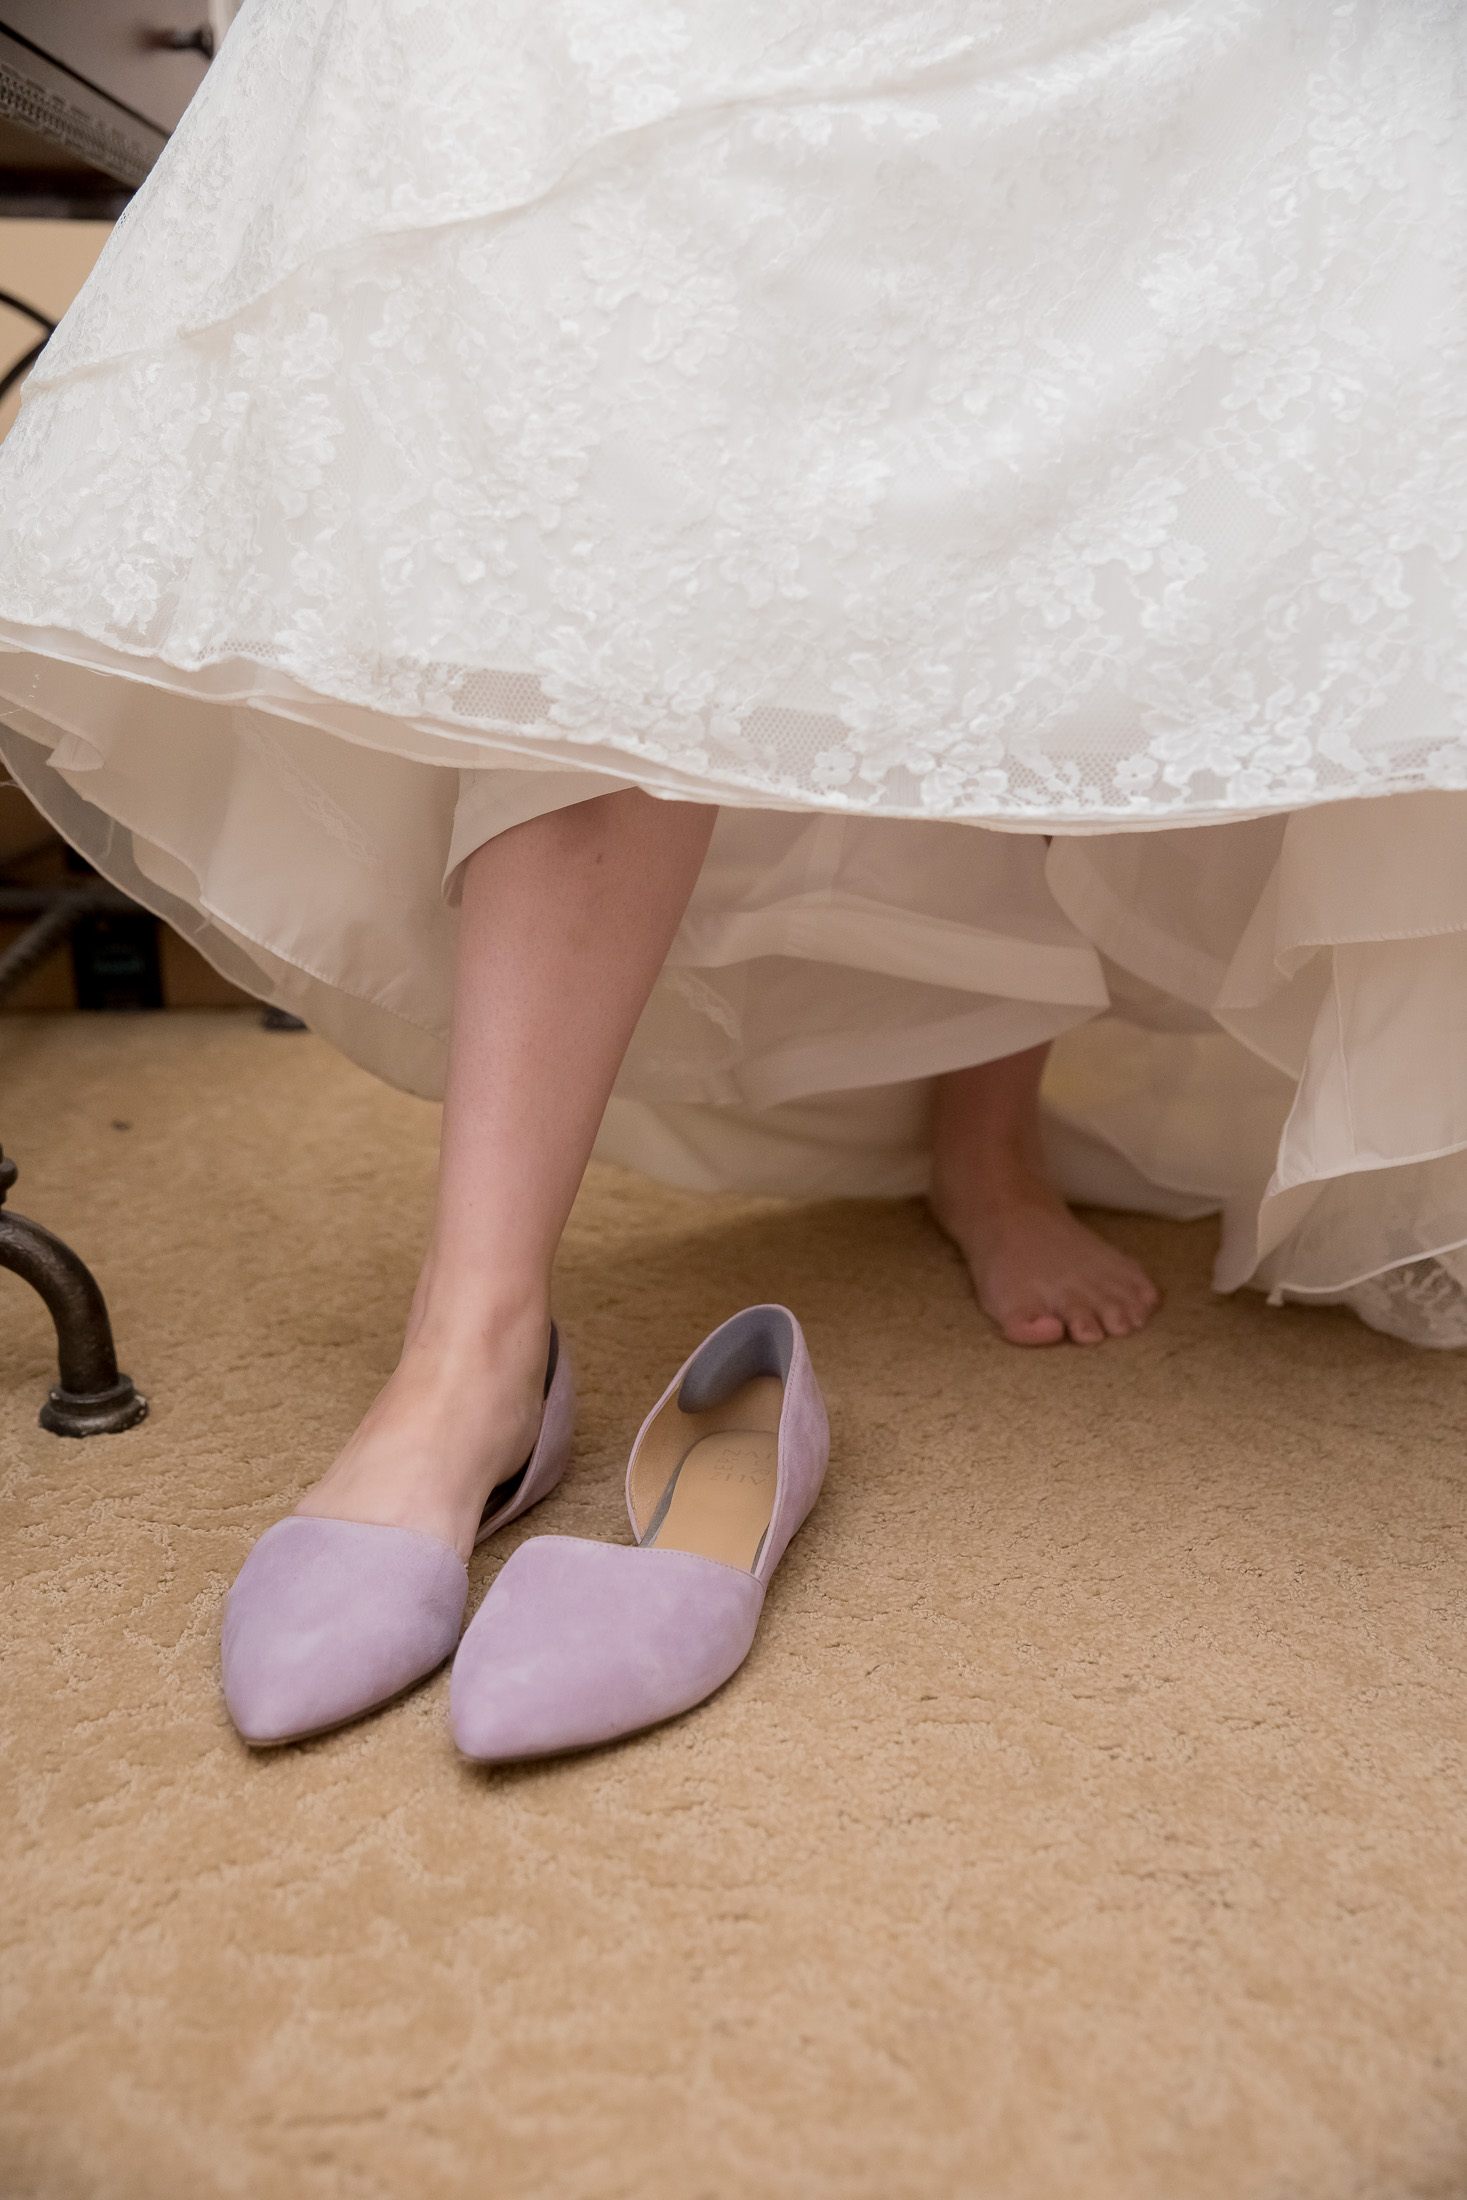 lilac shoes, getting ready, wedding, bride, tracy jenkins photography, publick house, Massachusetts, new england,  photography